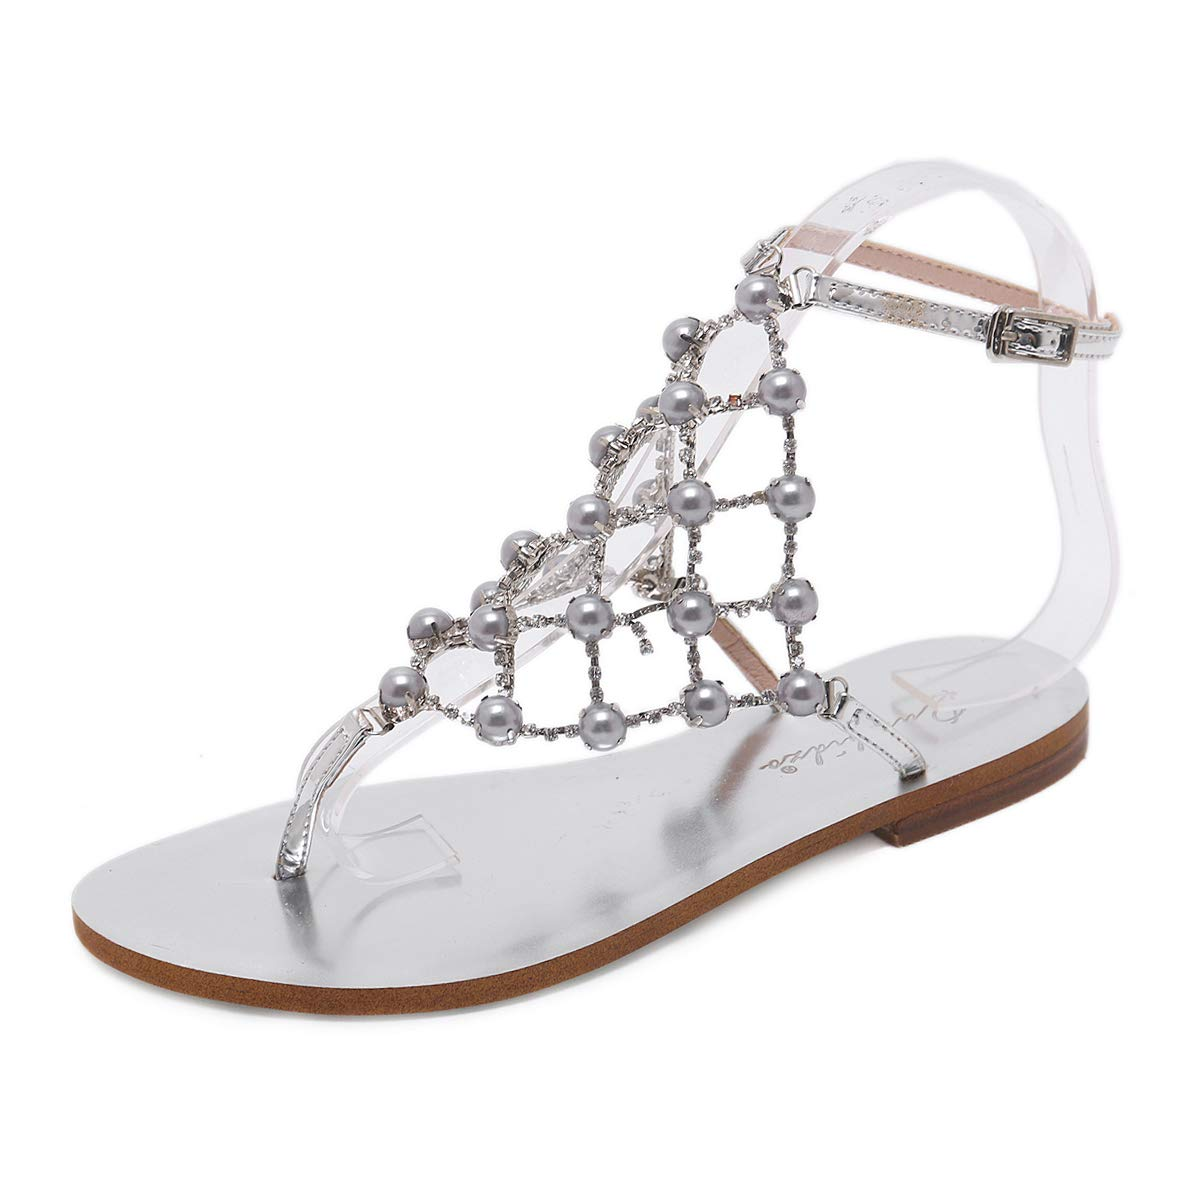 Elegant Pearls and Rhinestones Silver Ankle Strap Flat Thong Sandals - DeluxeAdultCostumes.com